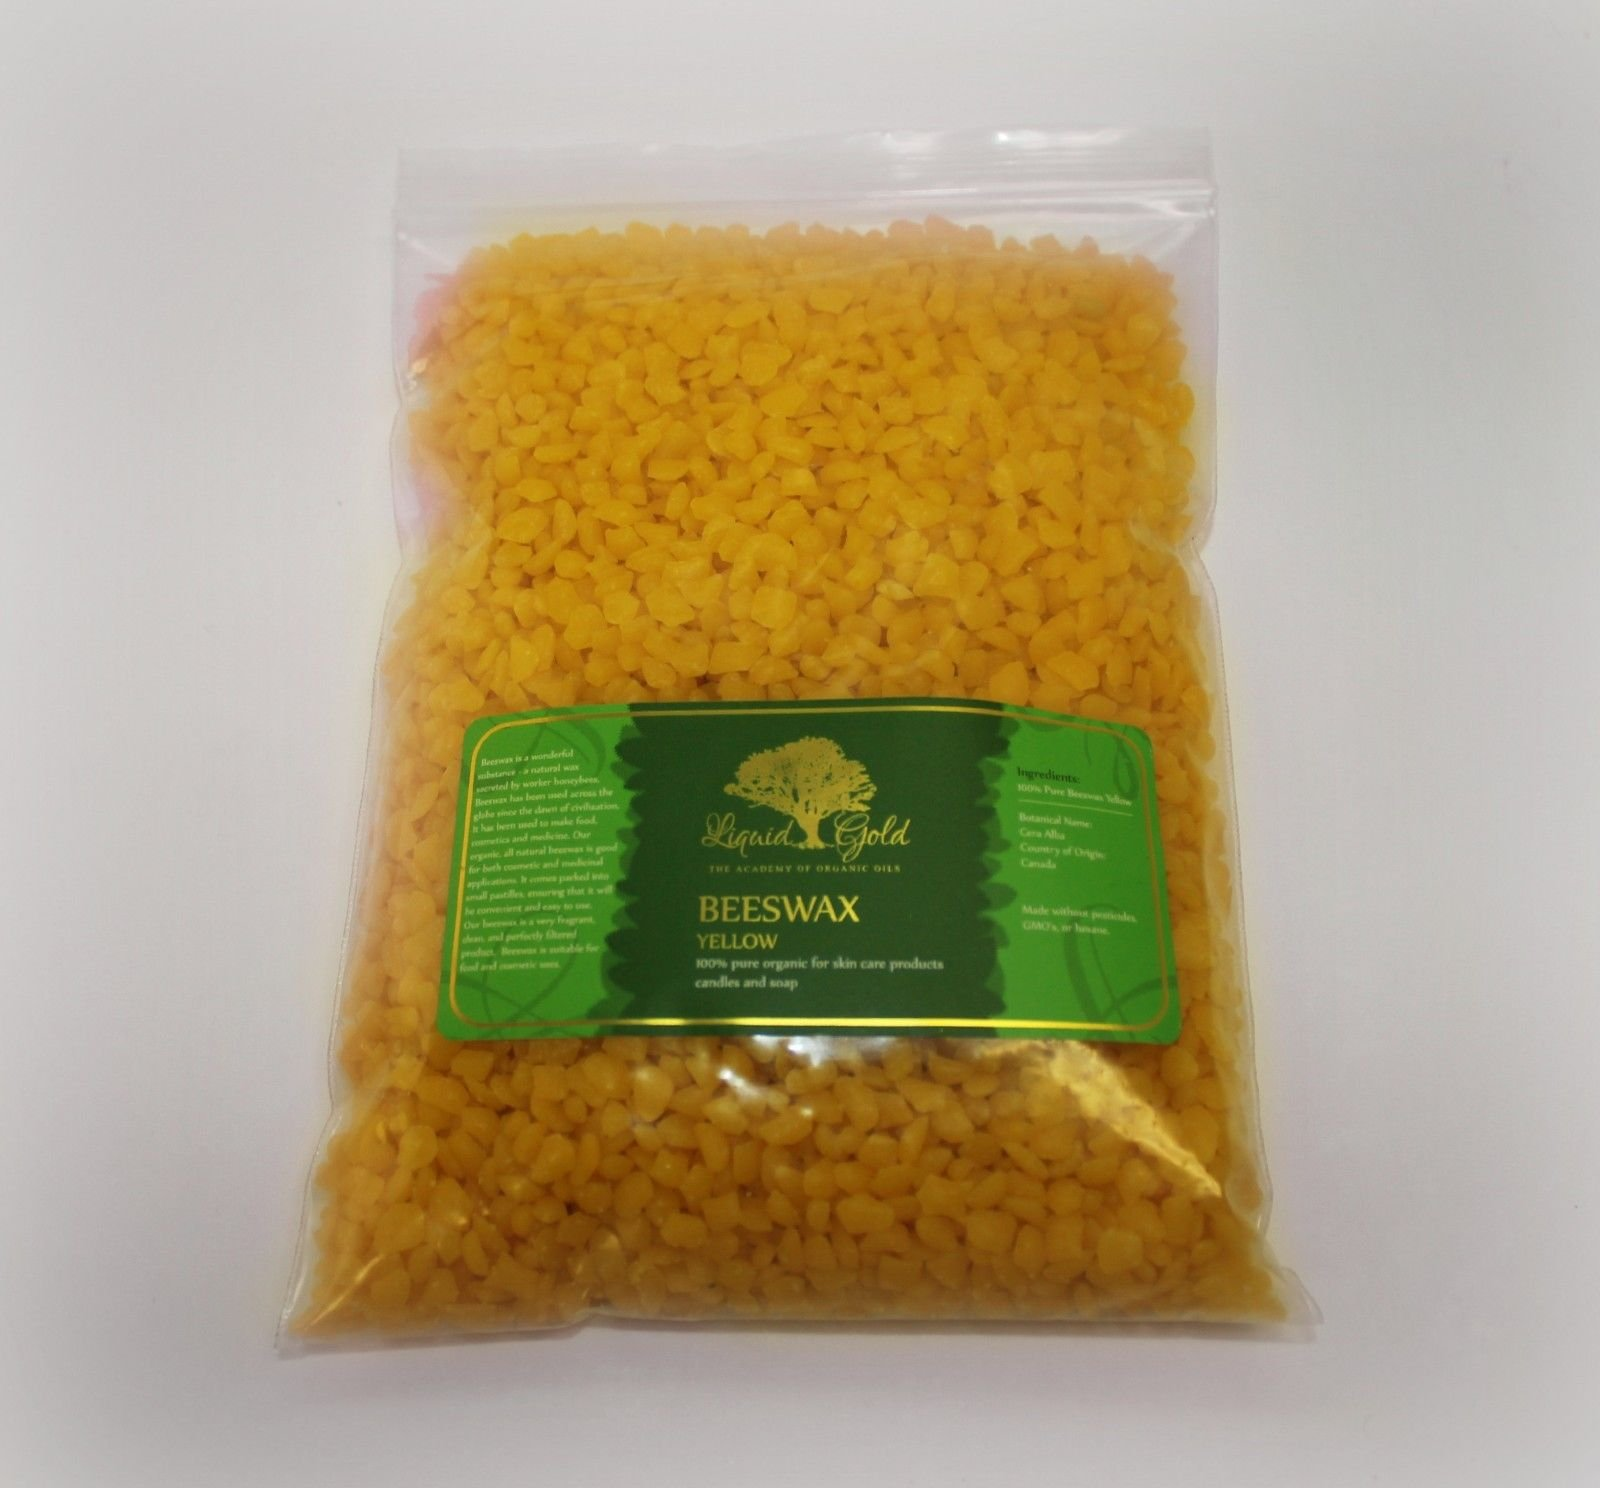 10 Pounds Premium Yellow Beeswax Organic Pastilles 100% Natural Pure by Liquid Gold